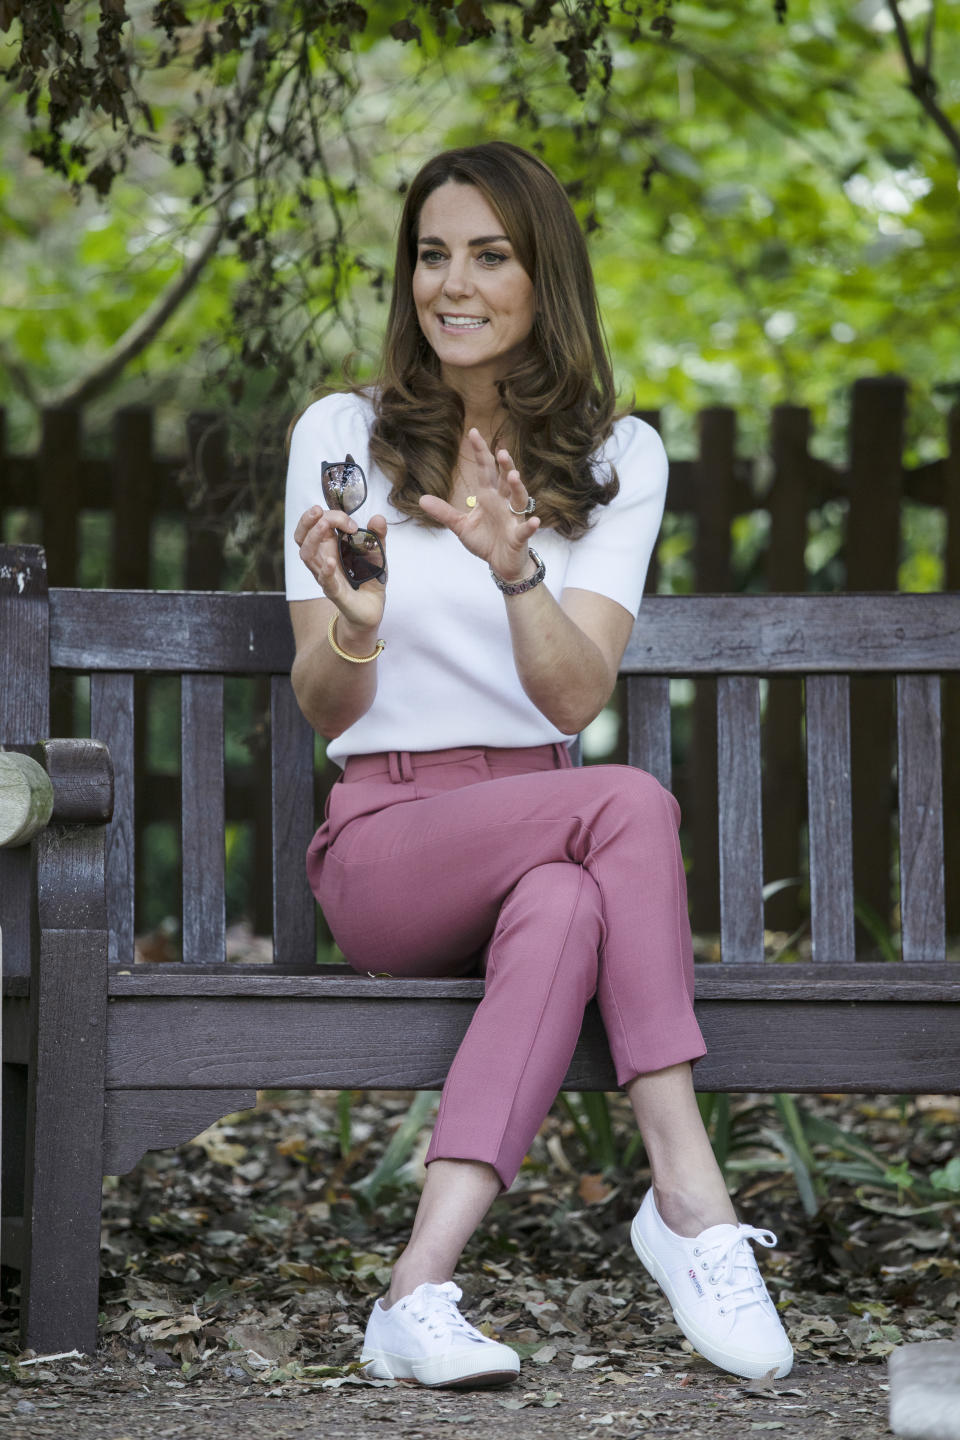 LONDON, ENGLAND - SEPTEMBER 22: Catherine, Duchess of Cambridge hears from families and key organisations about the ways in which peer support can help boost parent wellbeing while spending the day learning about the importance of parent-powered initiatives, in Battersea Park on September 22, 2020 in London, England. (Photo by Jack Hill - WPA Pool/Getty Images)